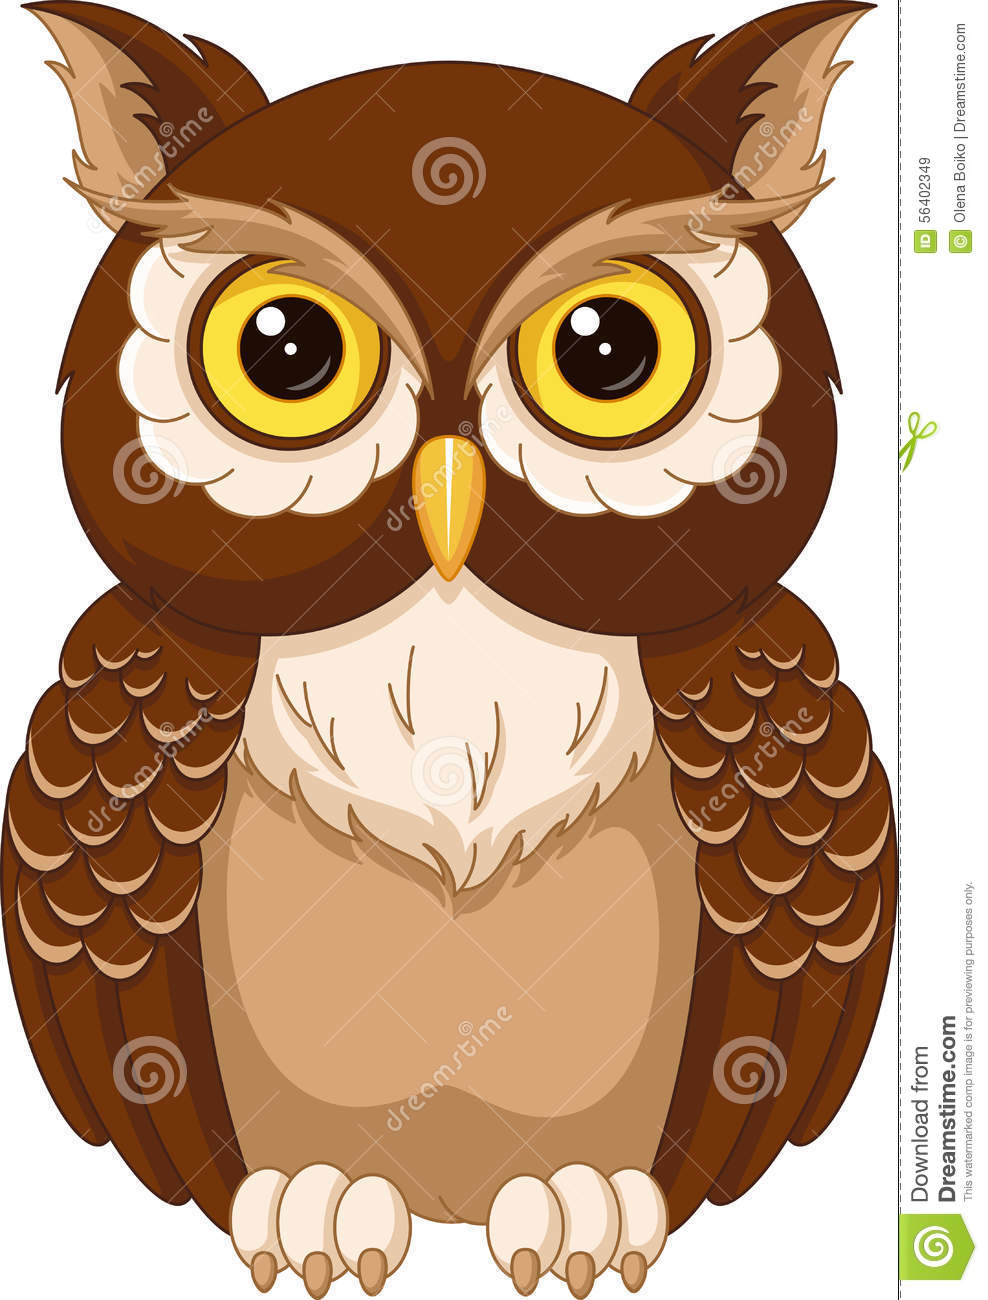 Owl Stock Vector Illustration Of Cartoon Wise